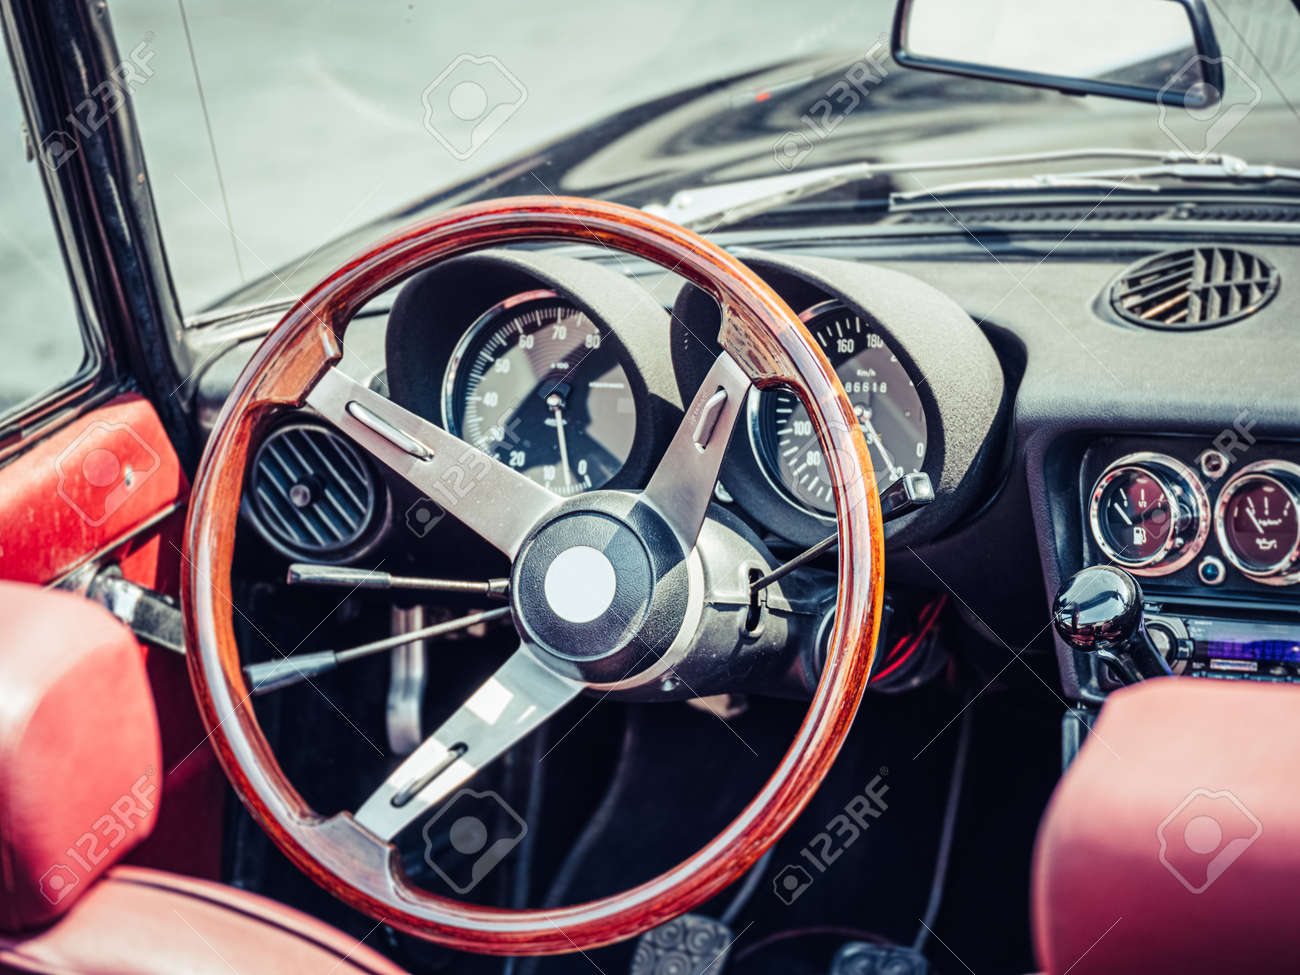 The steering wheel and dashboard of an antique classic car - 156989534